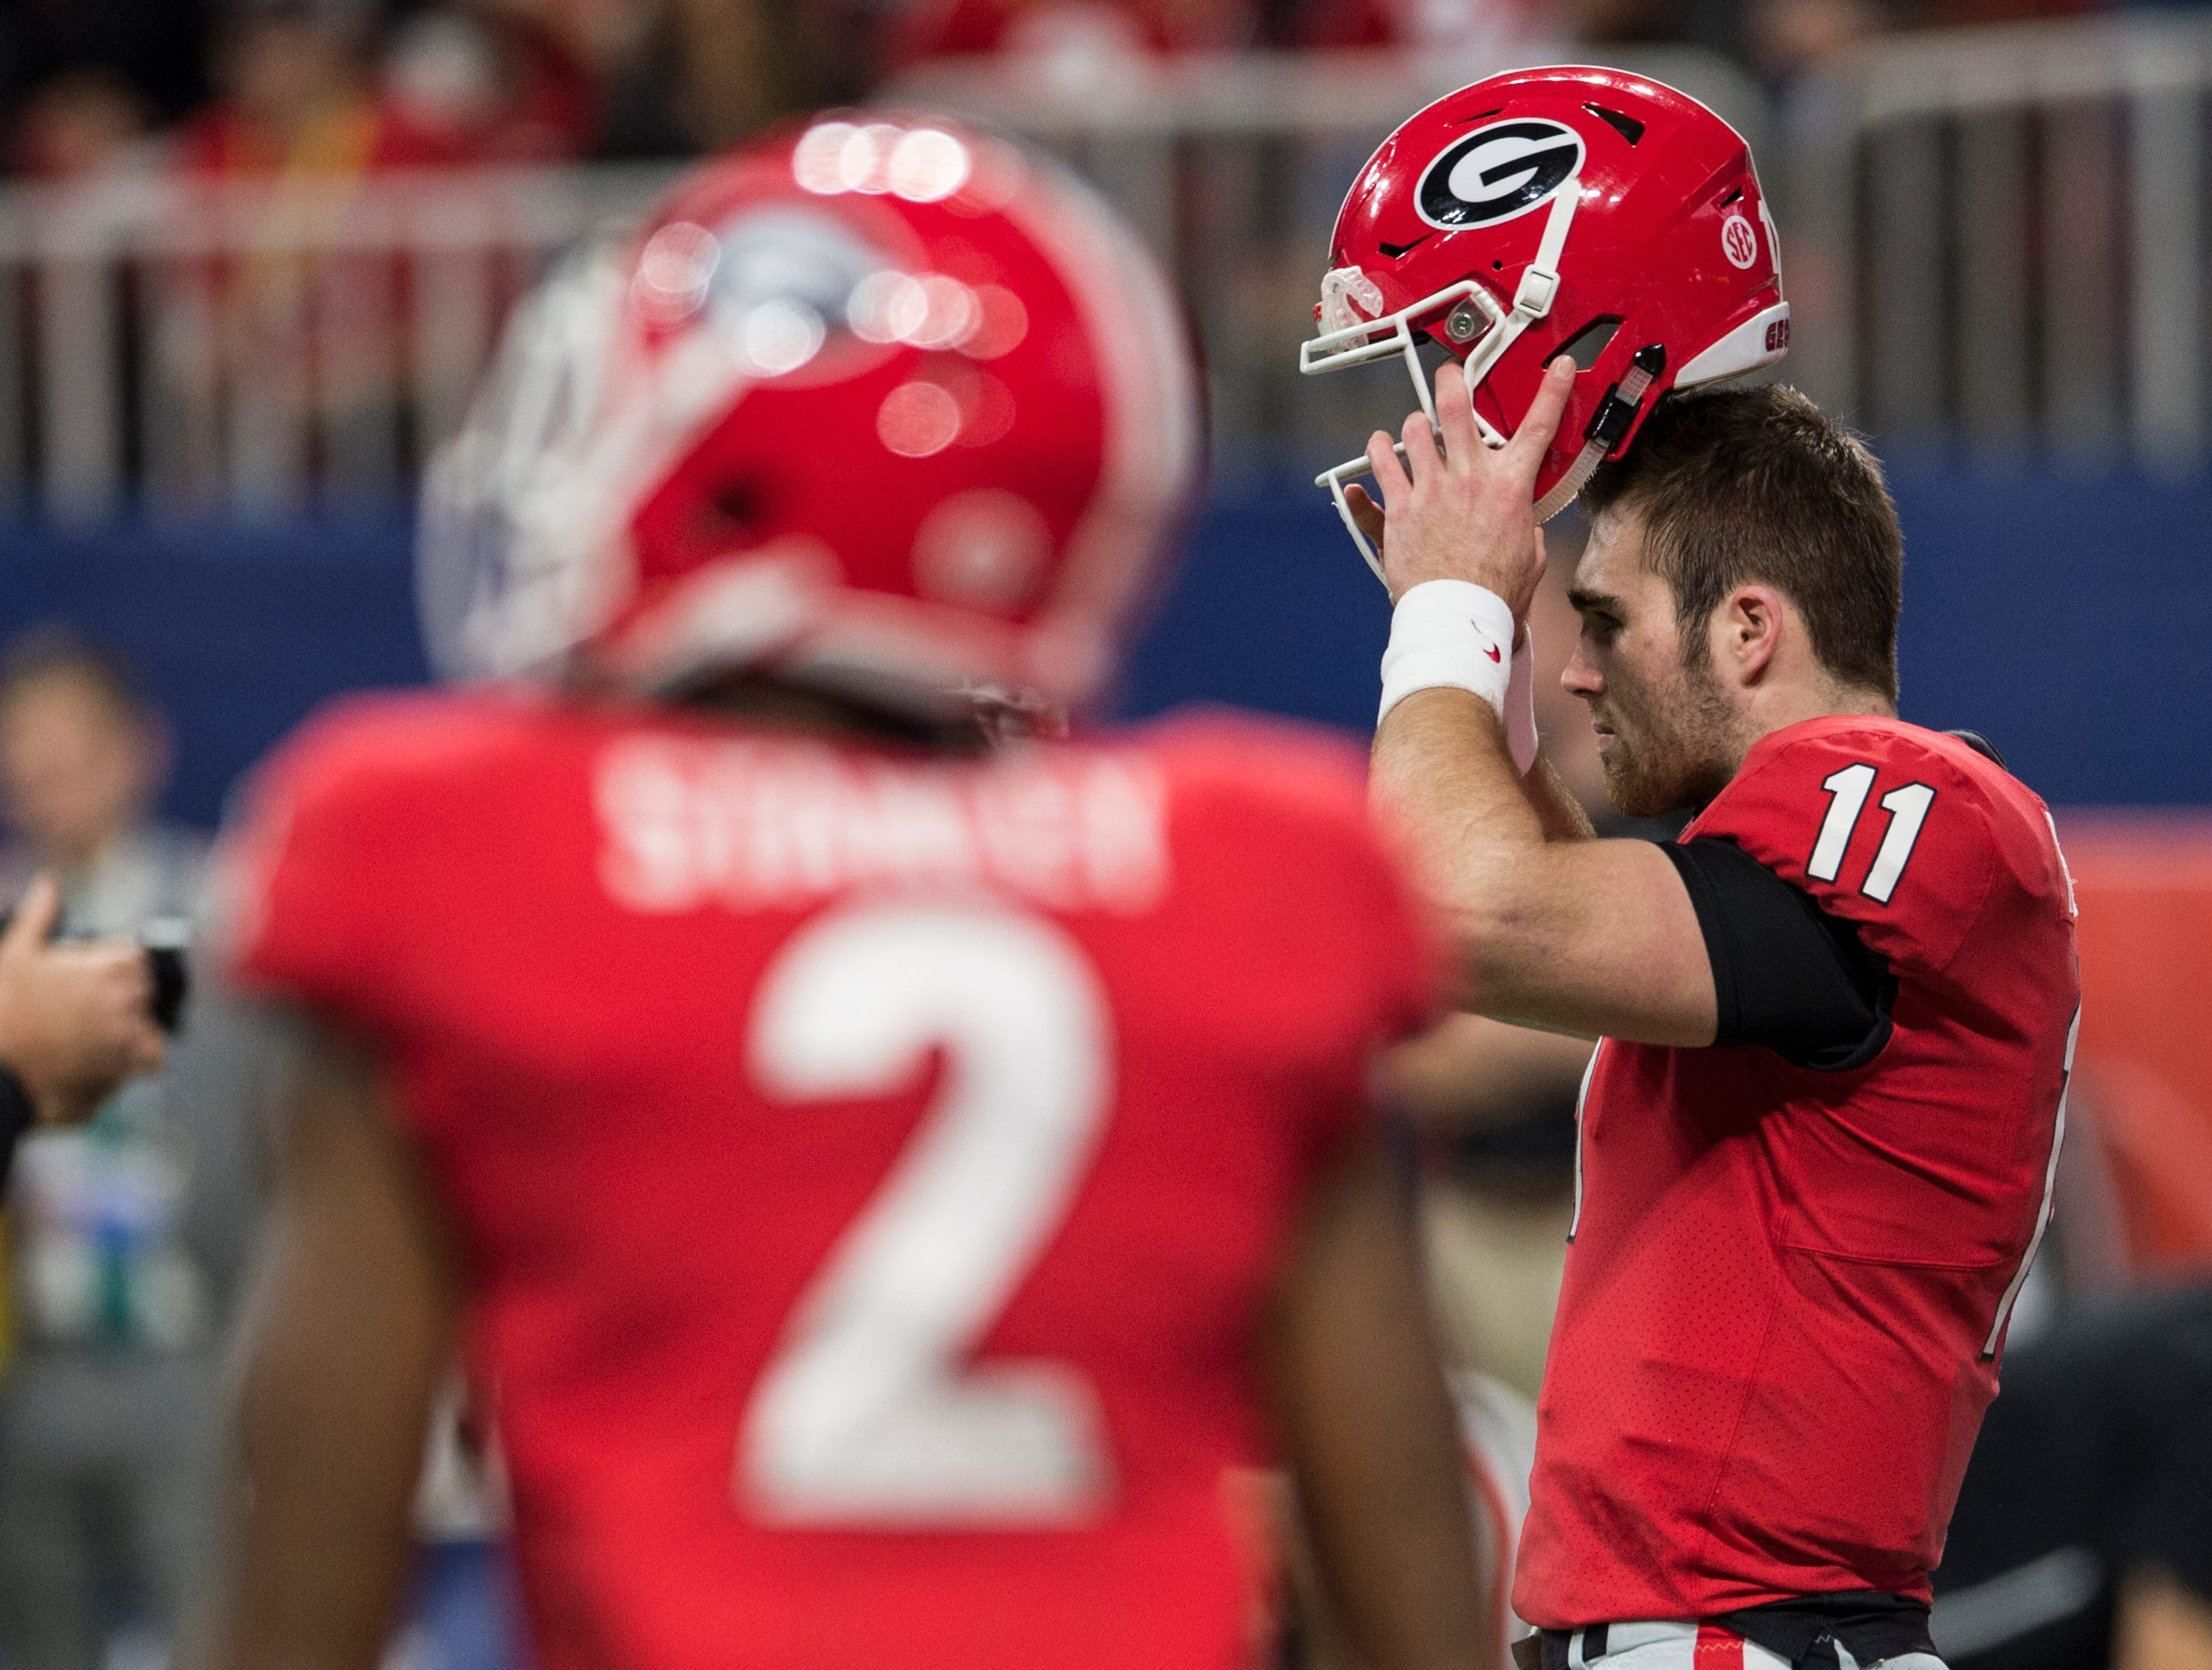 Georgia quarterback Jake Fromm (11) puts on his helmet during warm ups before the SEC Championship game at Mercedes-Benz Stadium in Atlanta, Ga., on Saturday Dec. 1, 2018.